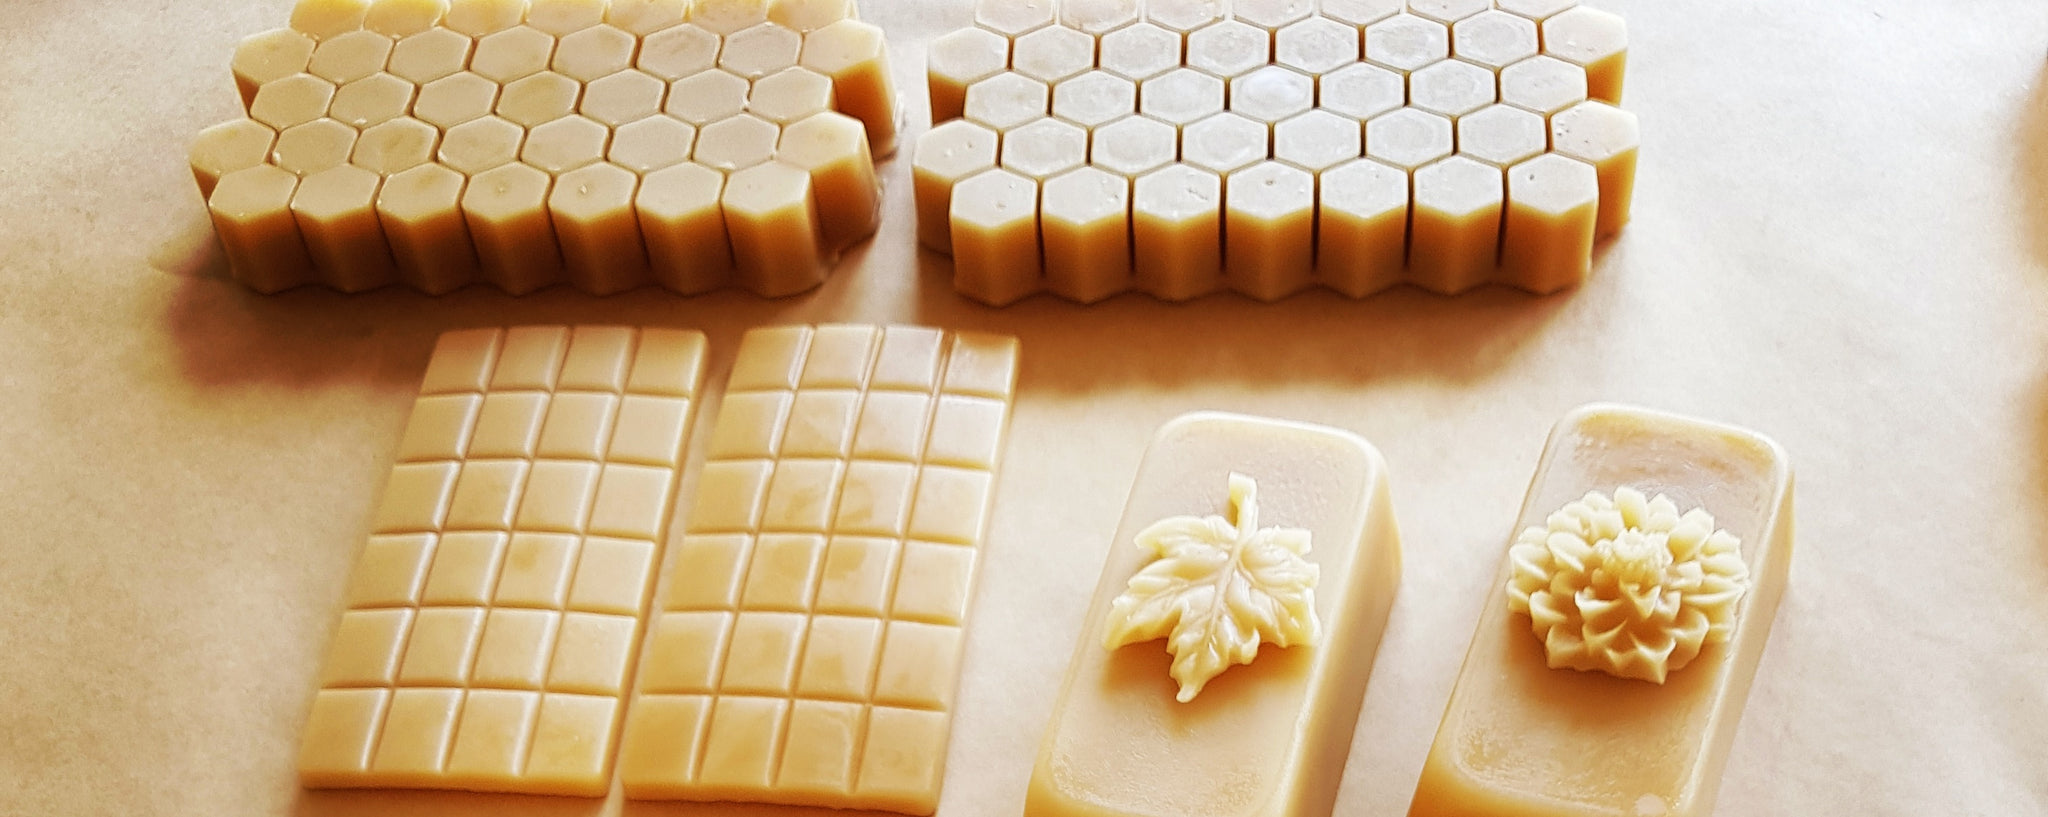 beeswax blocks beeswax essentials